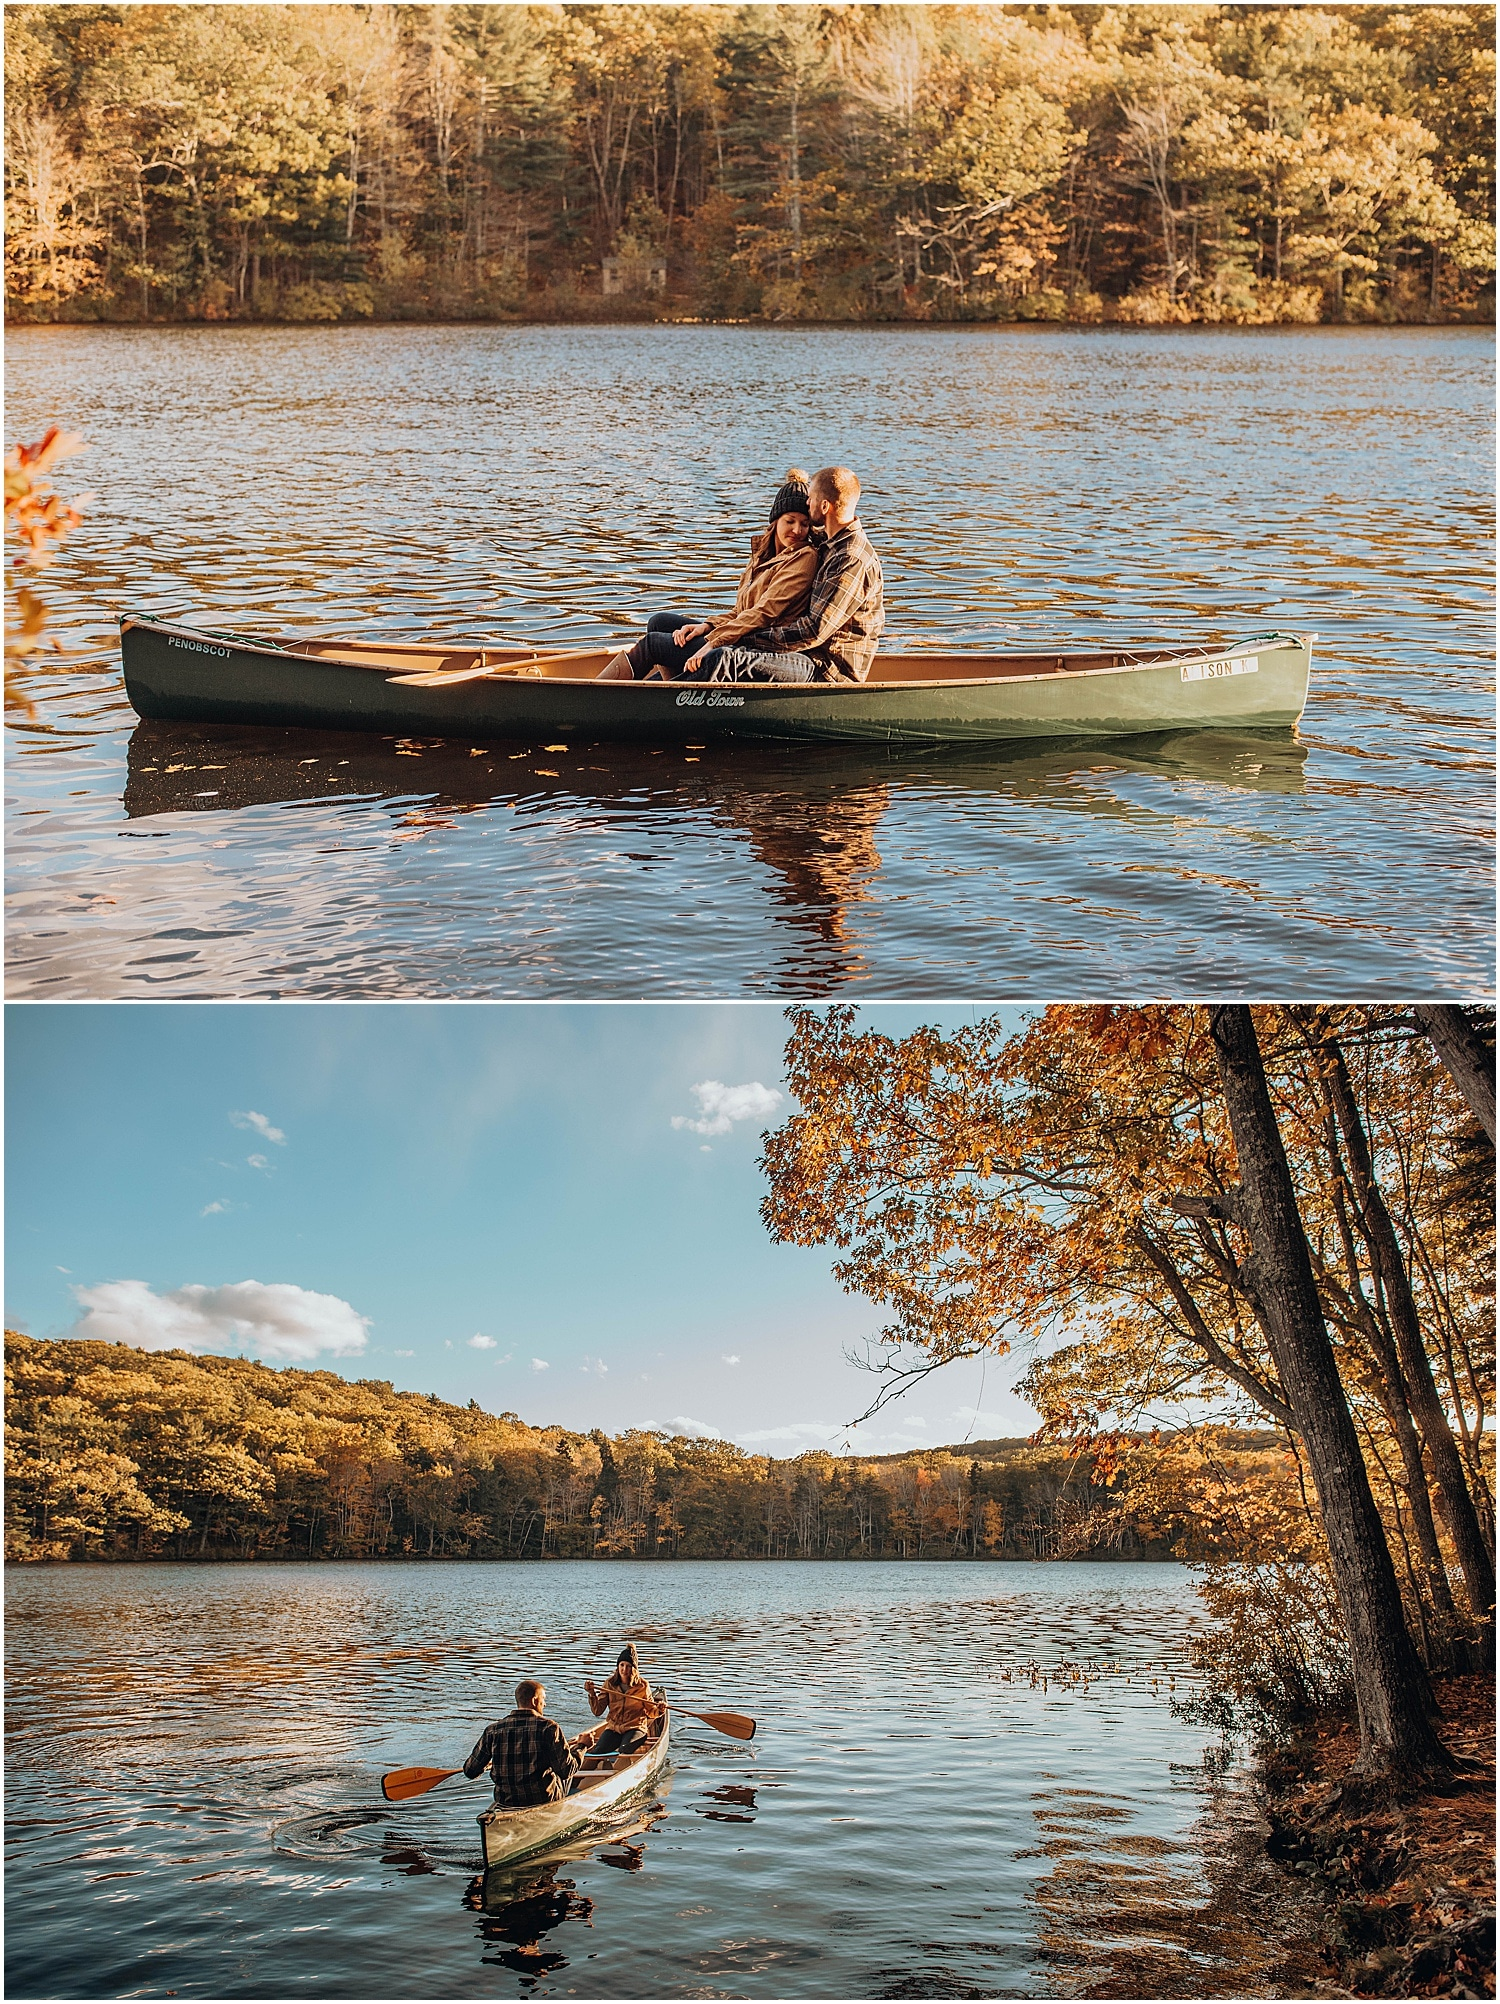 couple in a canoe on the water, snuggling